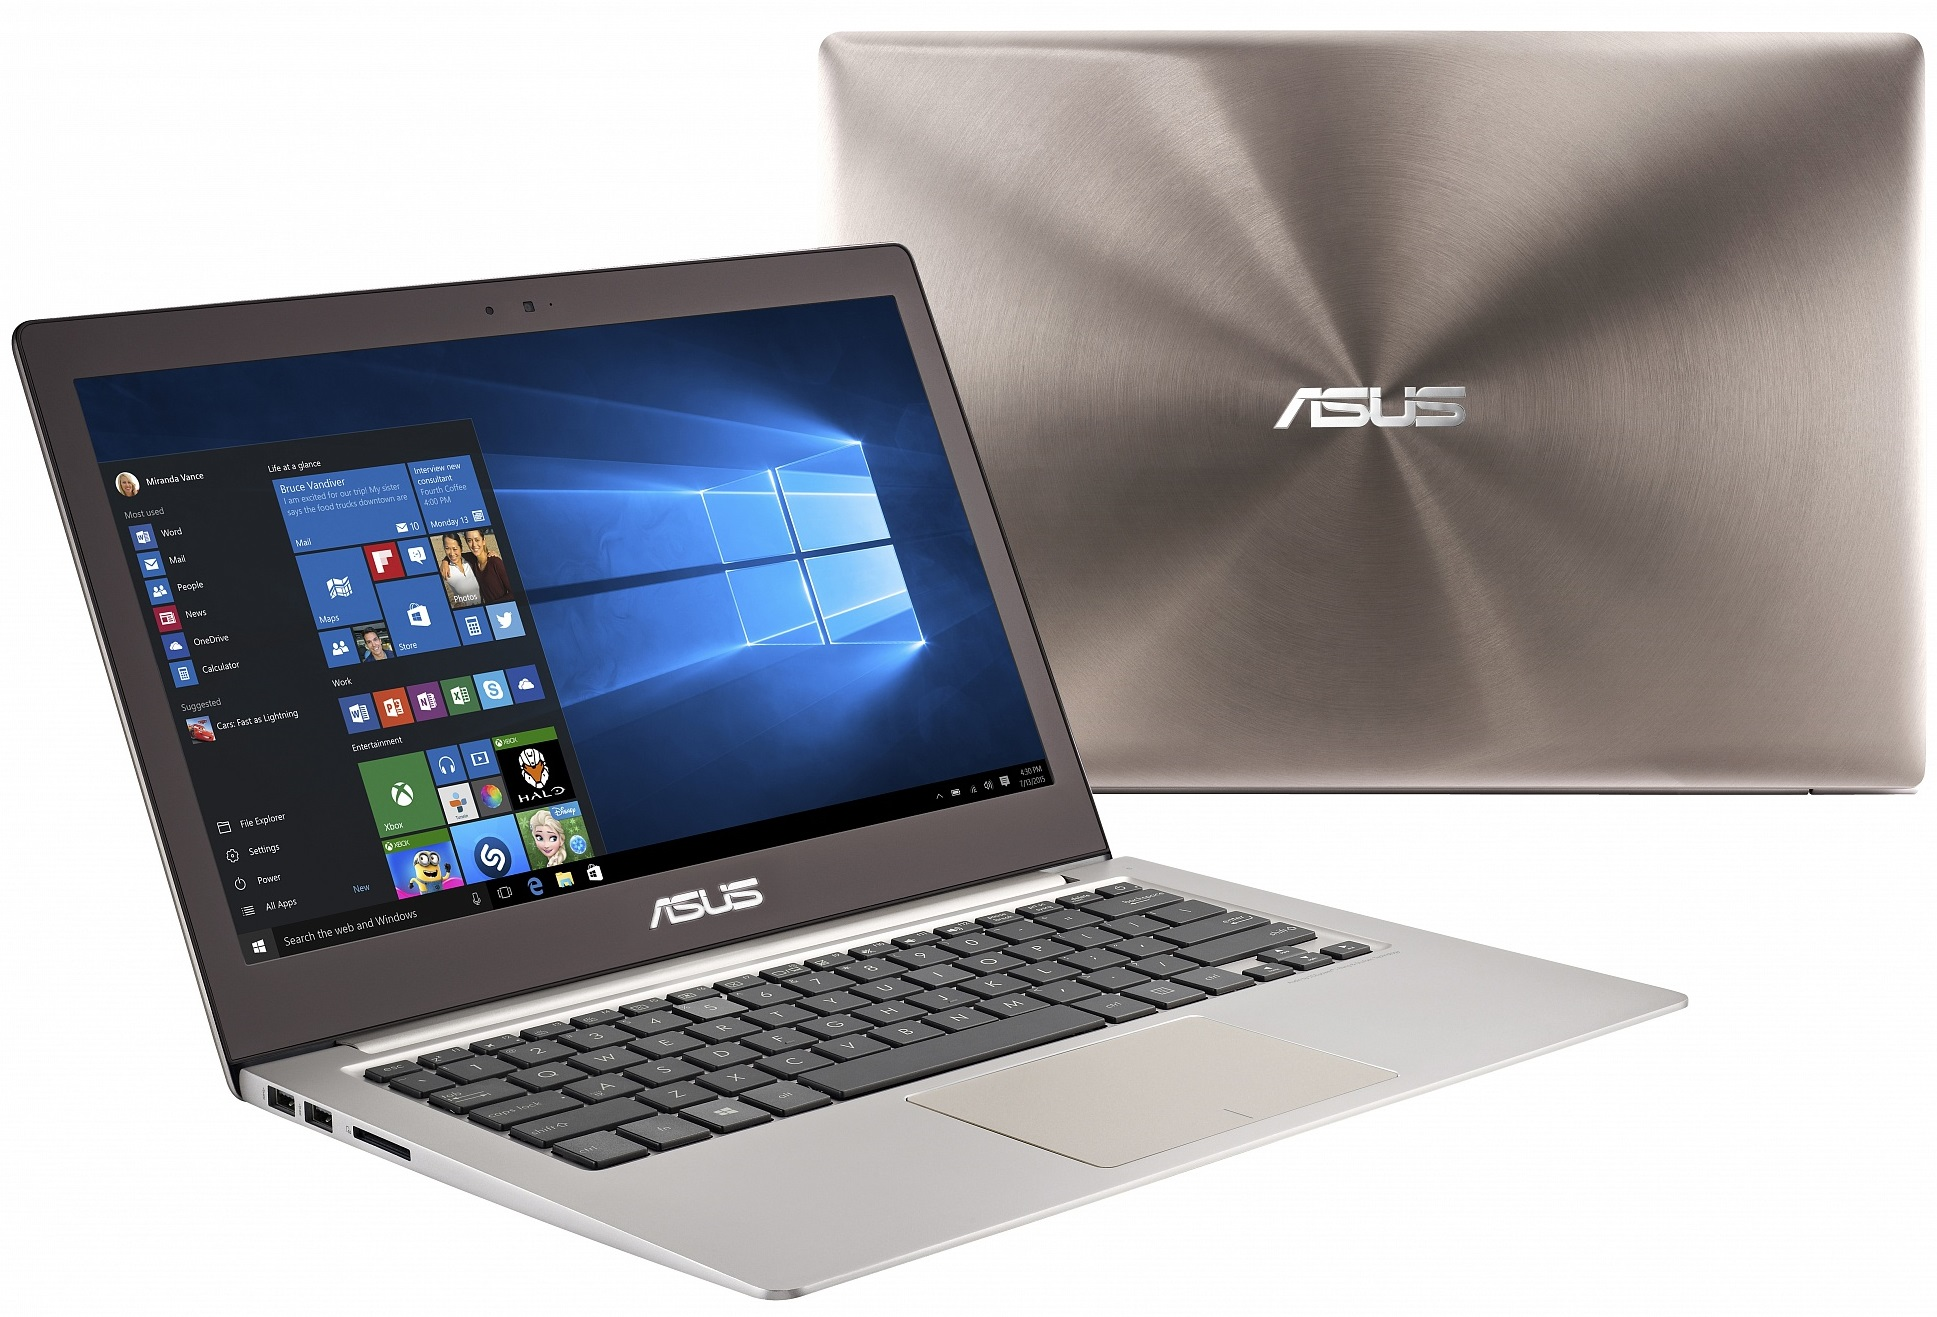 Ноутбук Asus UX303UA-R4364T BTS 13.3'', Intel Core i3 6100U 2.3Ghz, 4Gb, 1Tb HDD (90NB08V1-M06500)